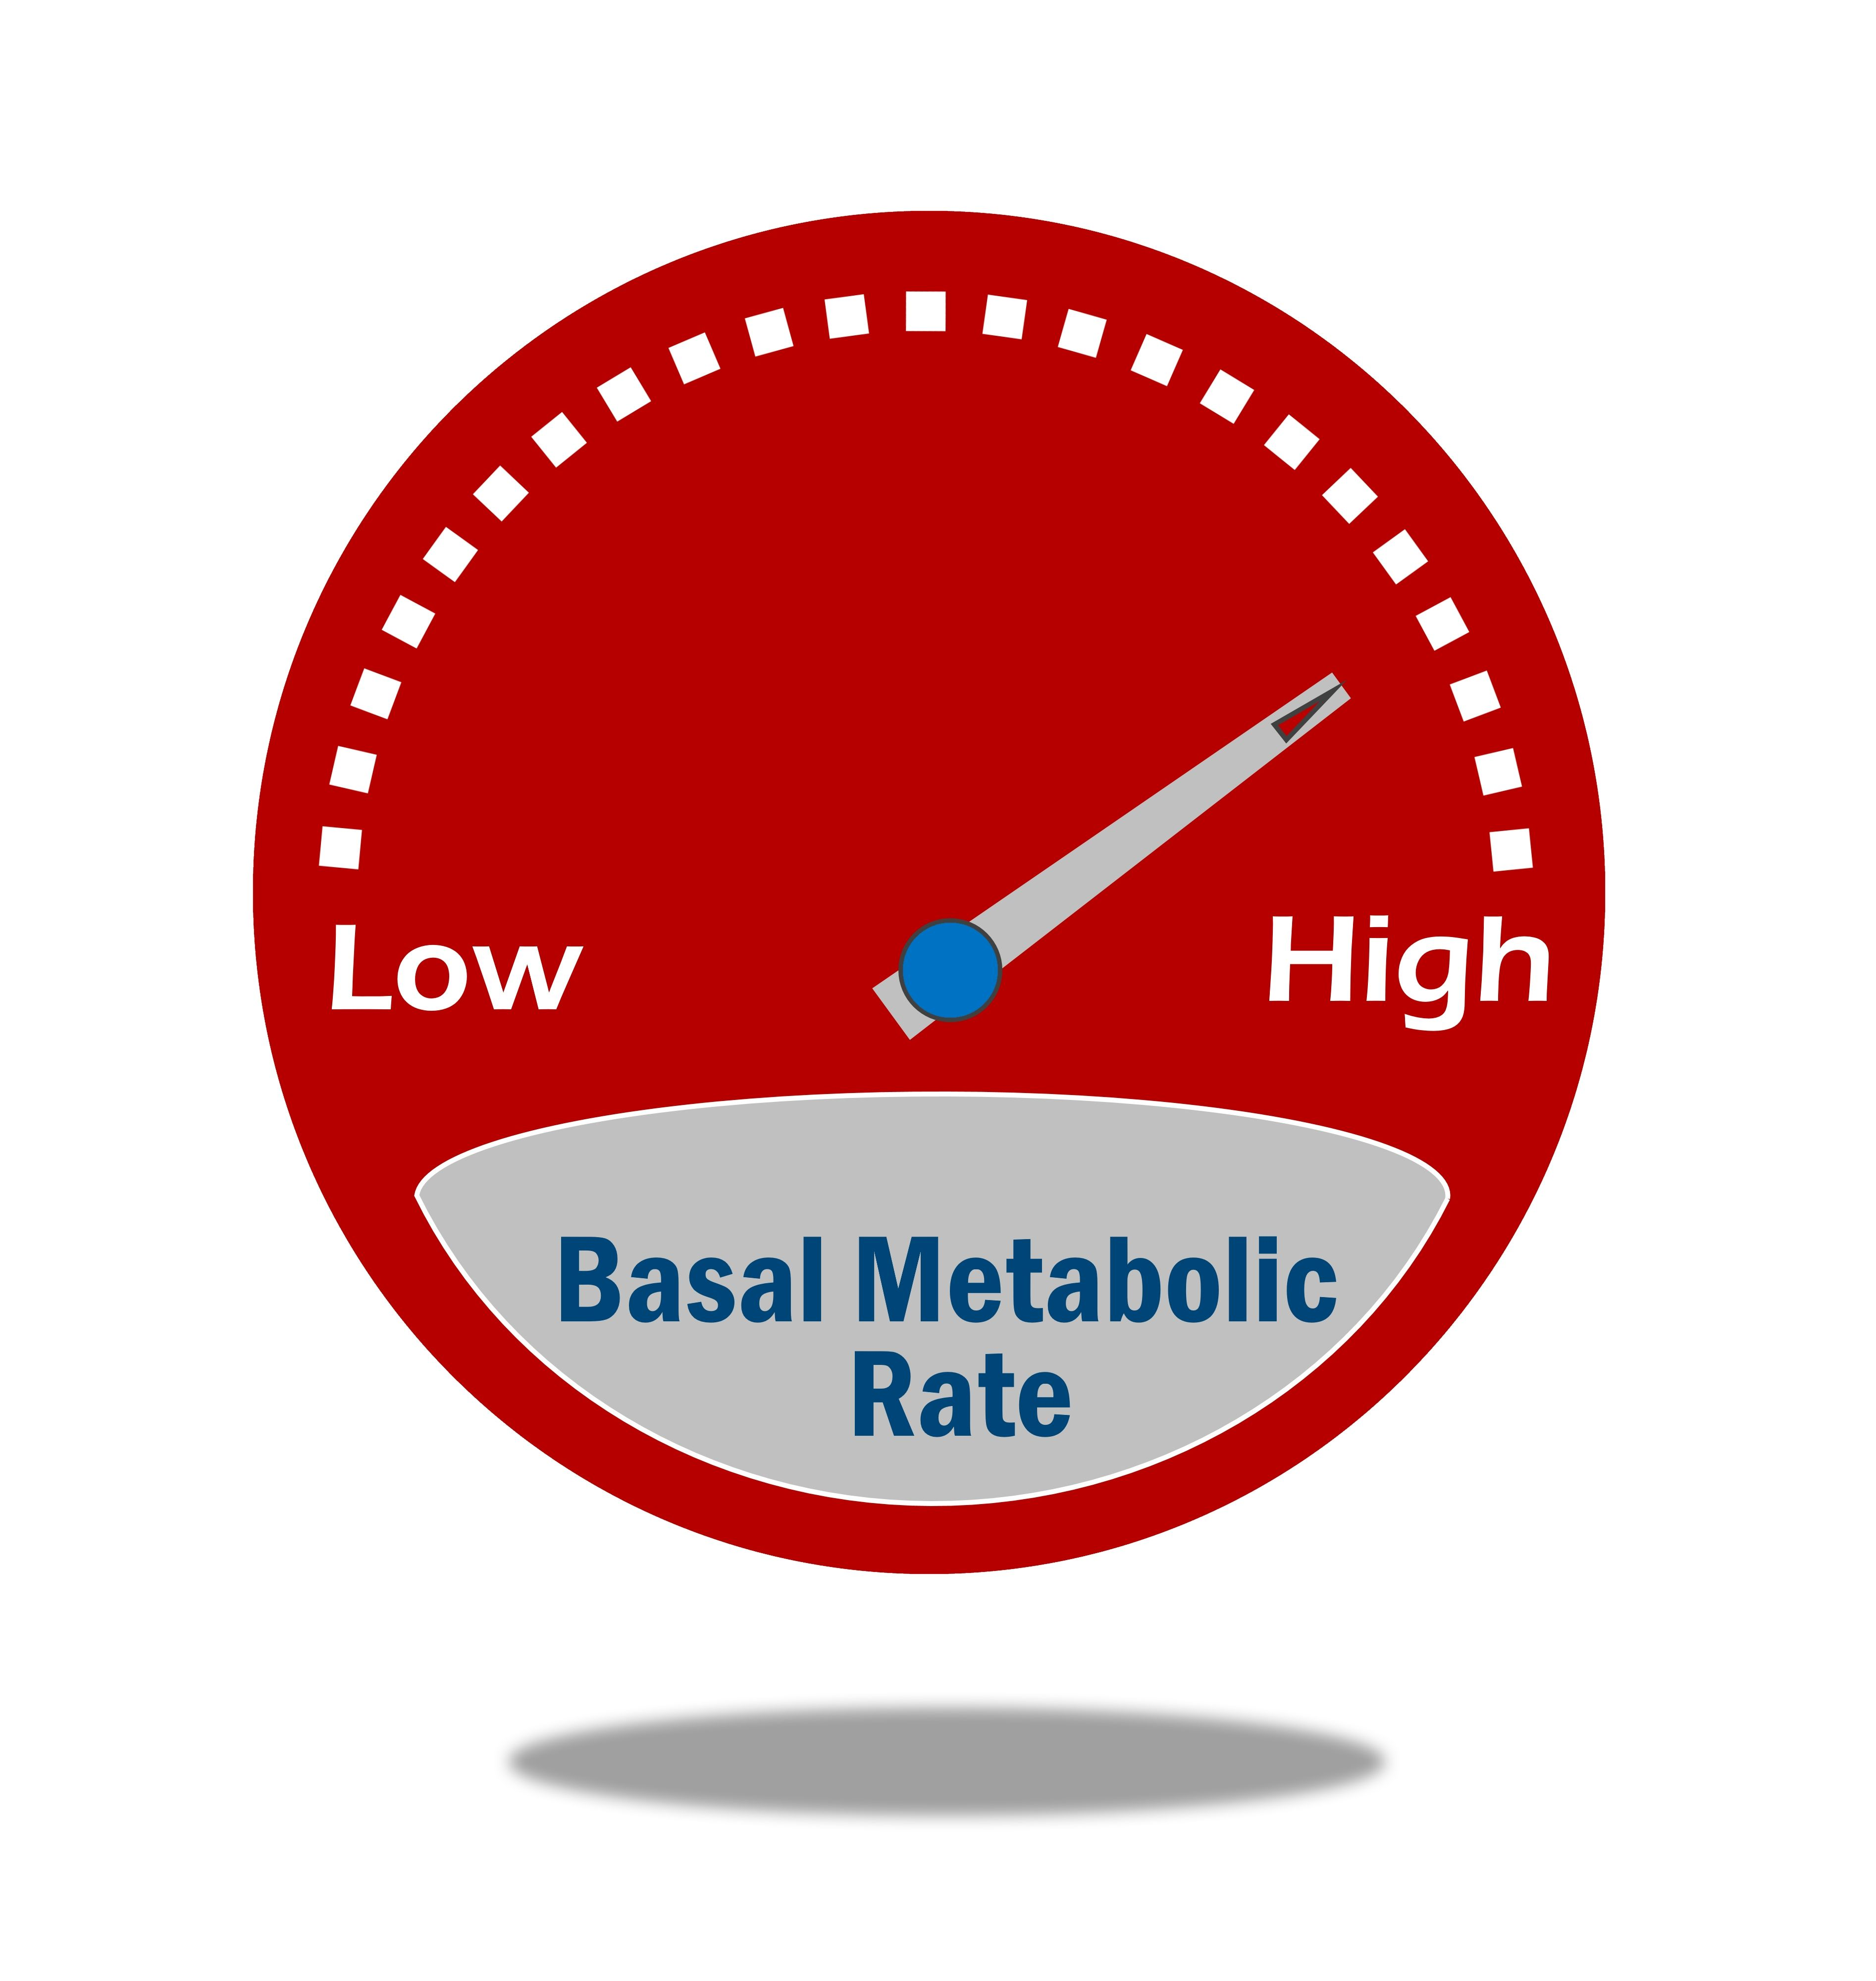 How To Use Basal Metabolic Rate